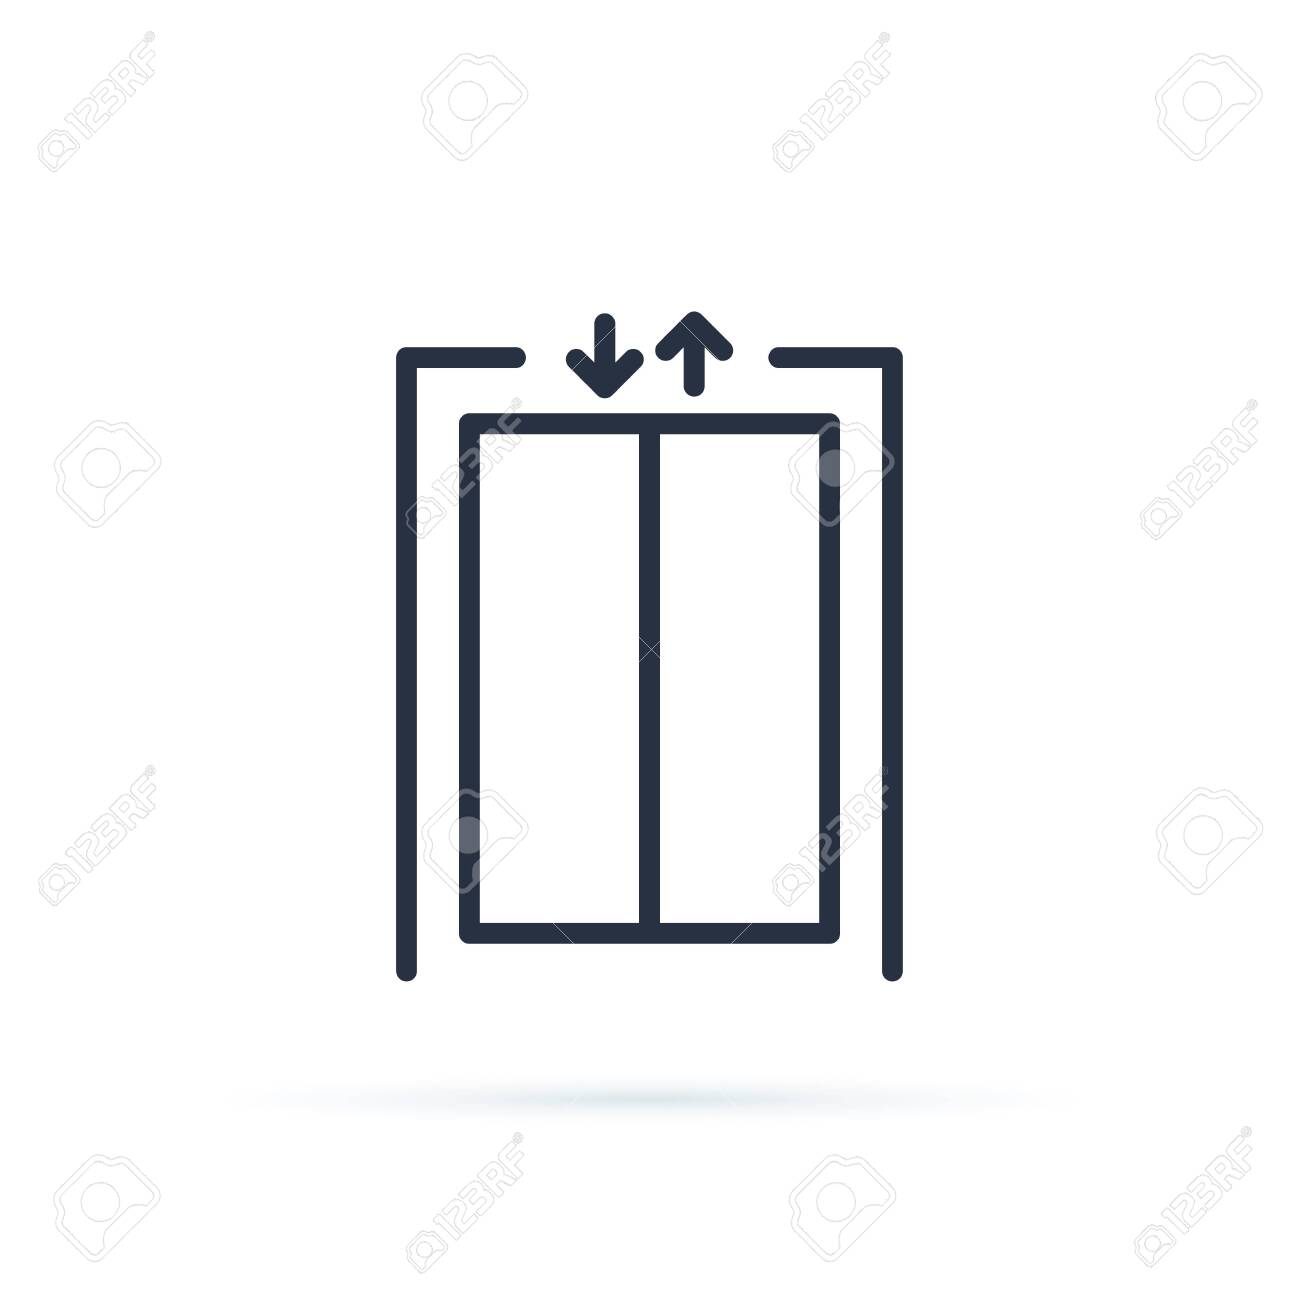 Lift vector icon. Blank closed elevator in office floor interior, front view. Empty lift. Concept of business center or hotel lifting template. Elevator icon vector. Escalator, down, up symbol. - 124424495